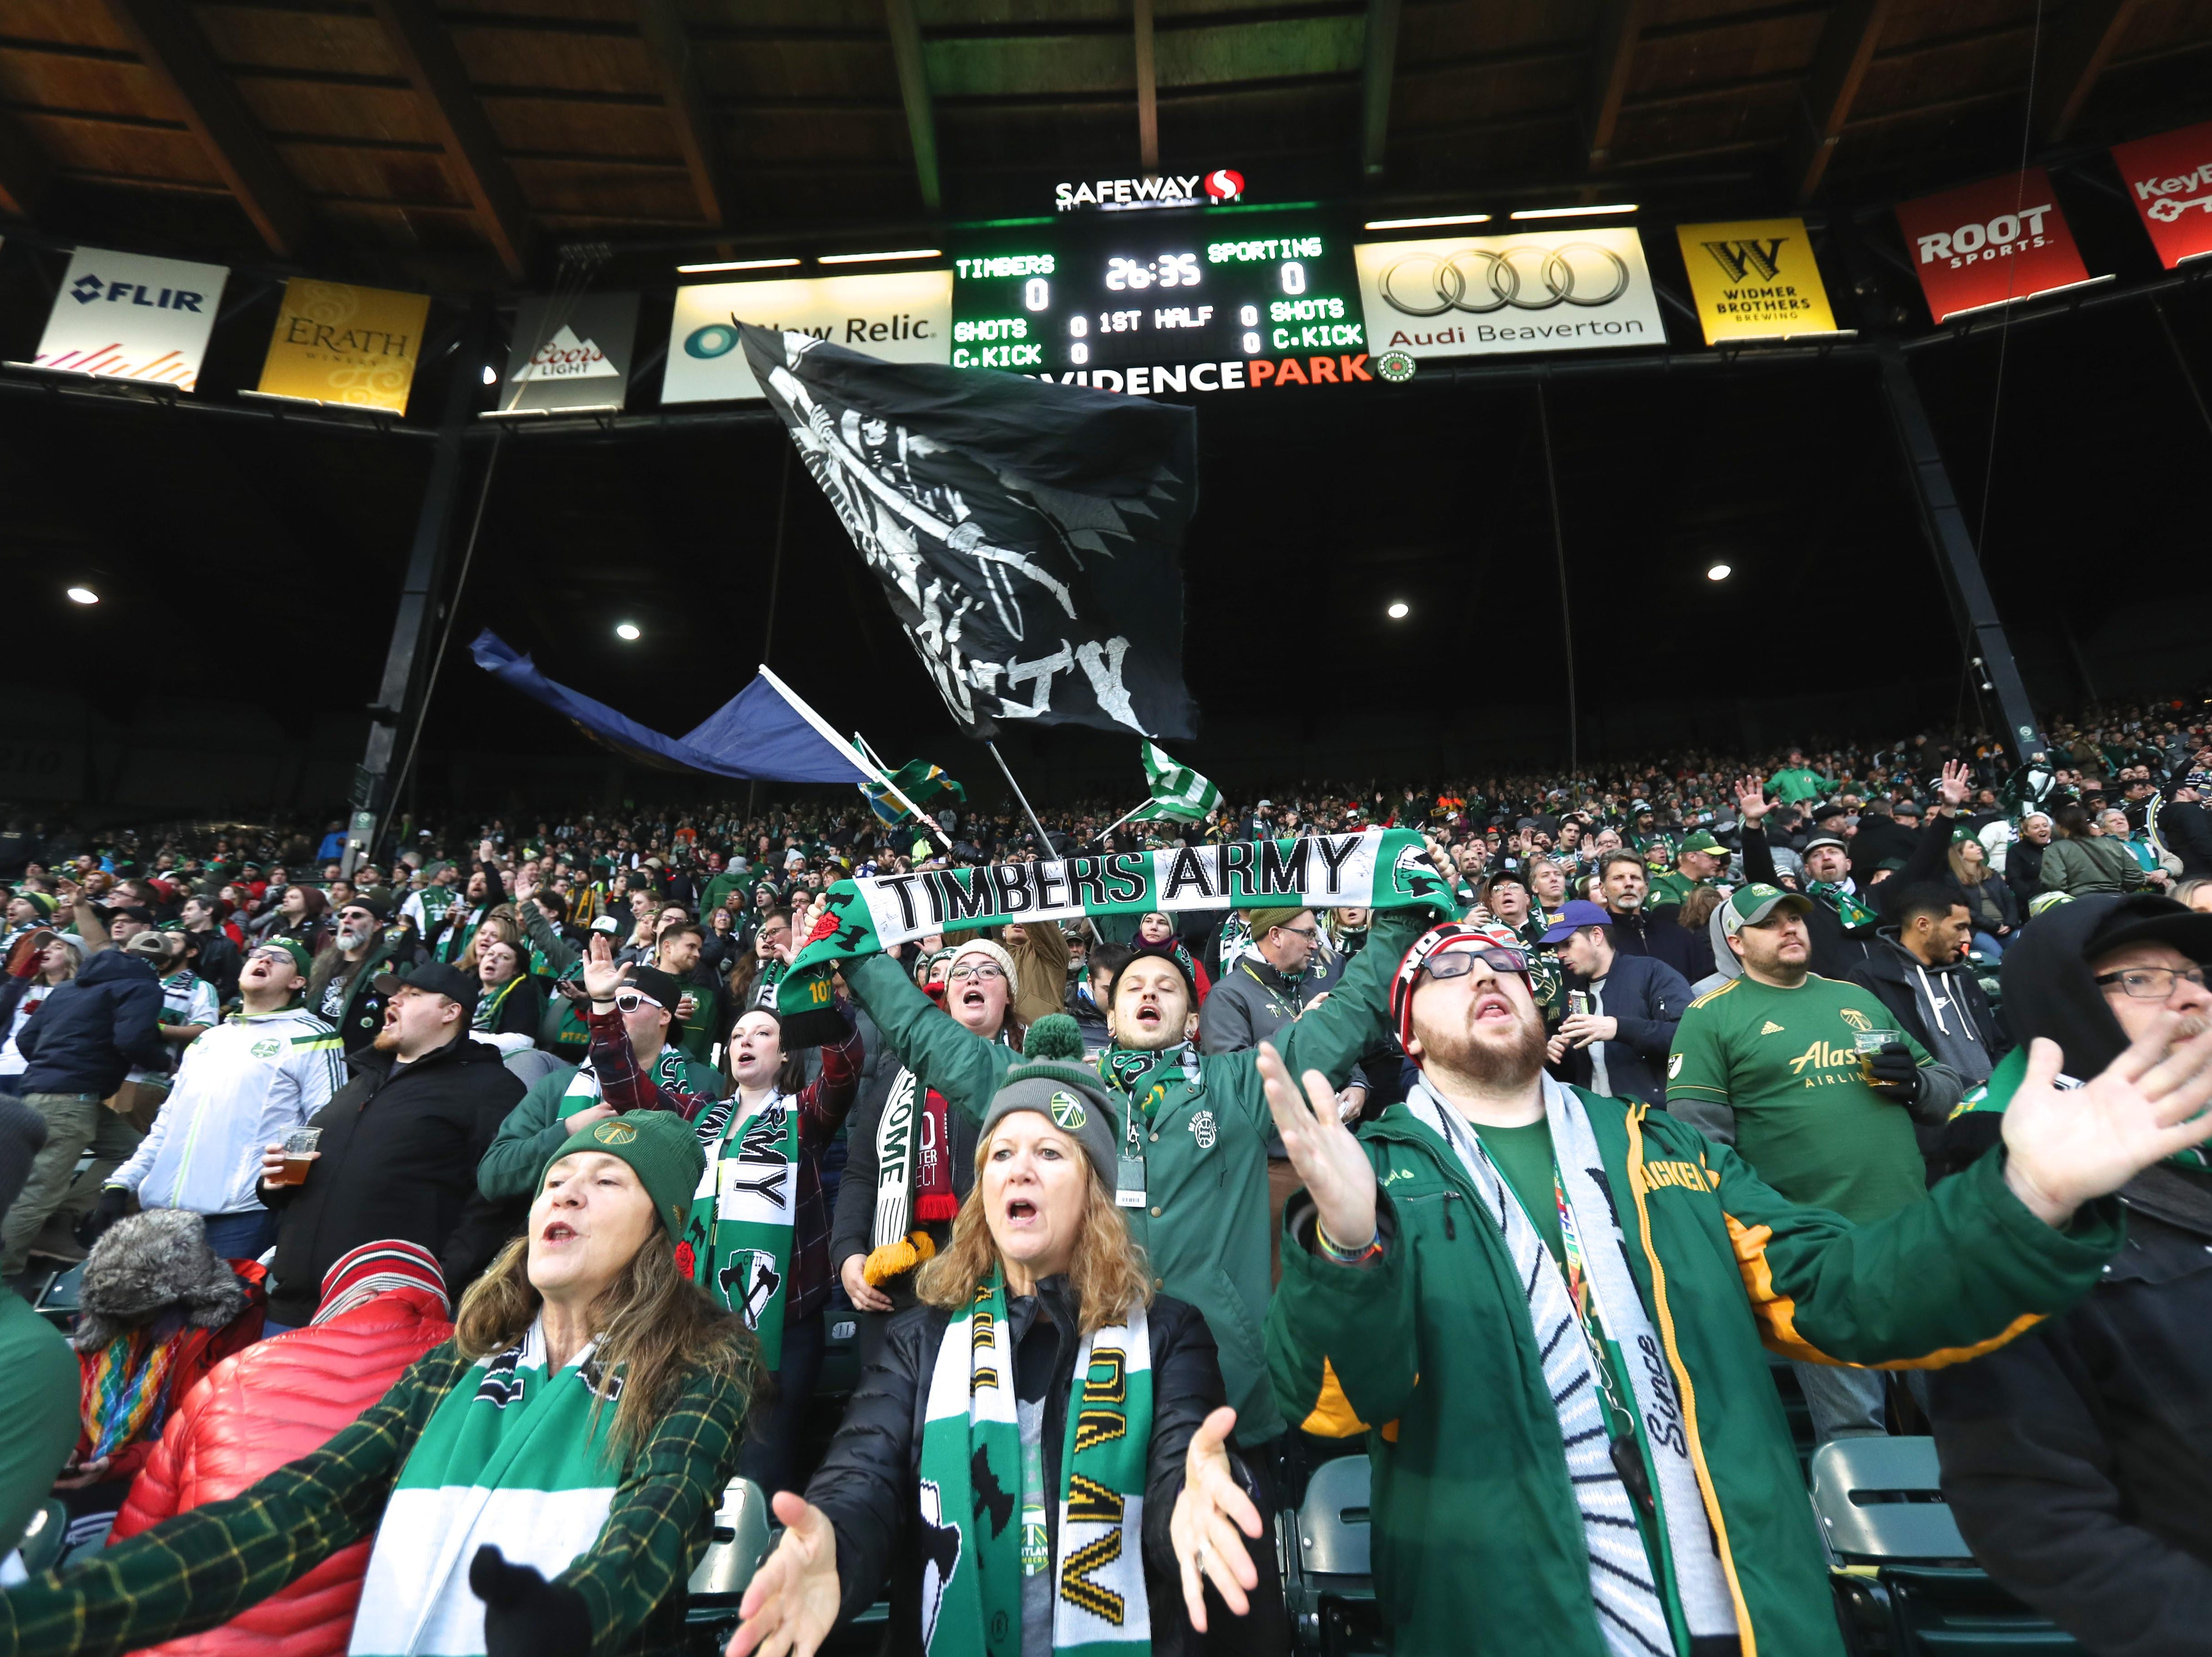 Timbers Army cheer for  Portland Timbers during warm-ups prior to the match against Sporting Kansas City in the first leg of the MLS Western Conference Championship at Providence Park.